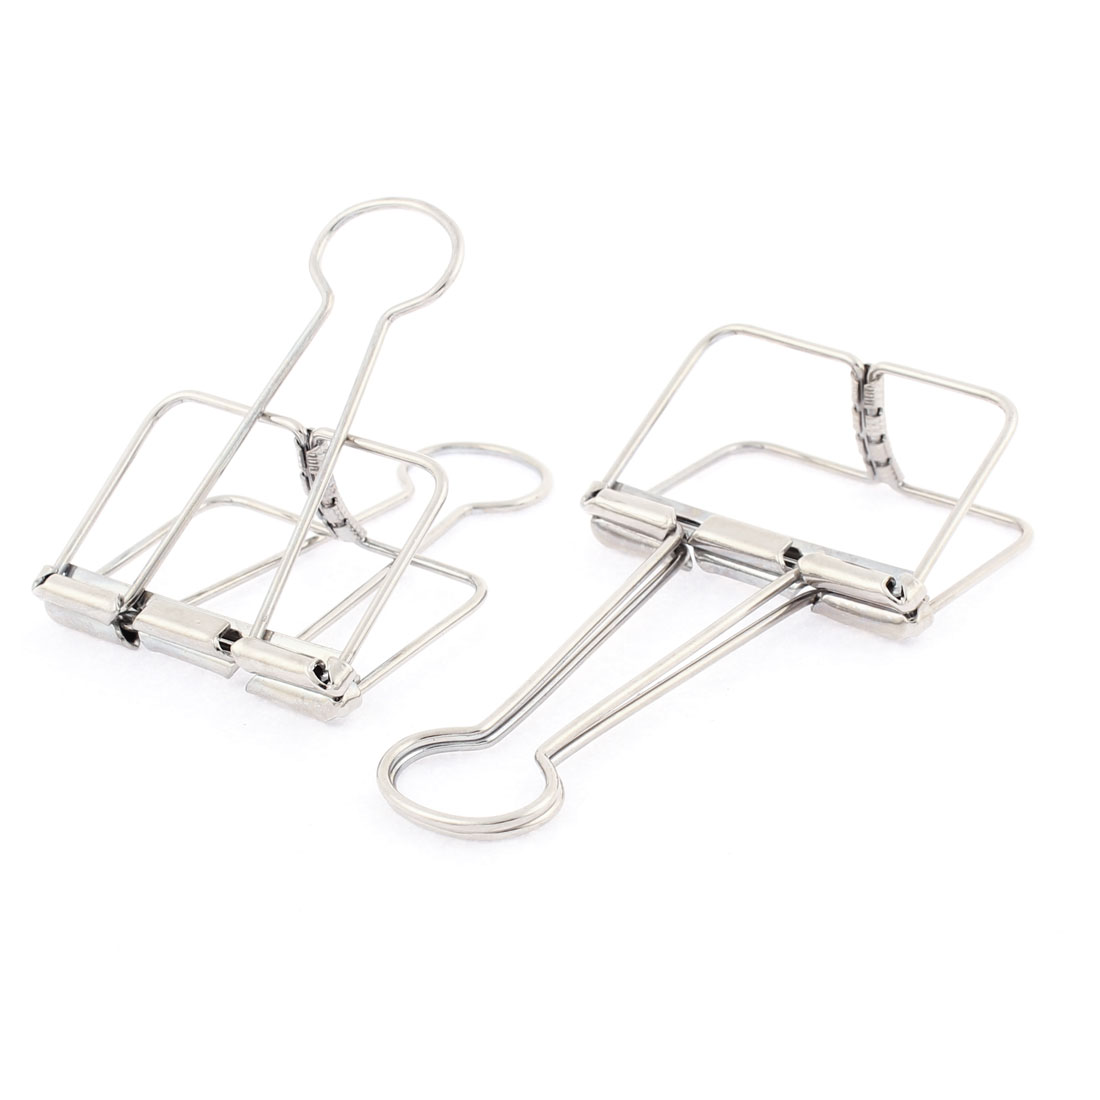 Silver Tone Metal 50mm Width Wire Binder Clip Clamps 2 Pcs